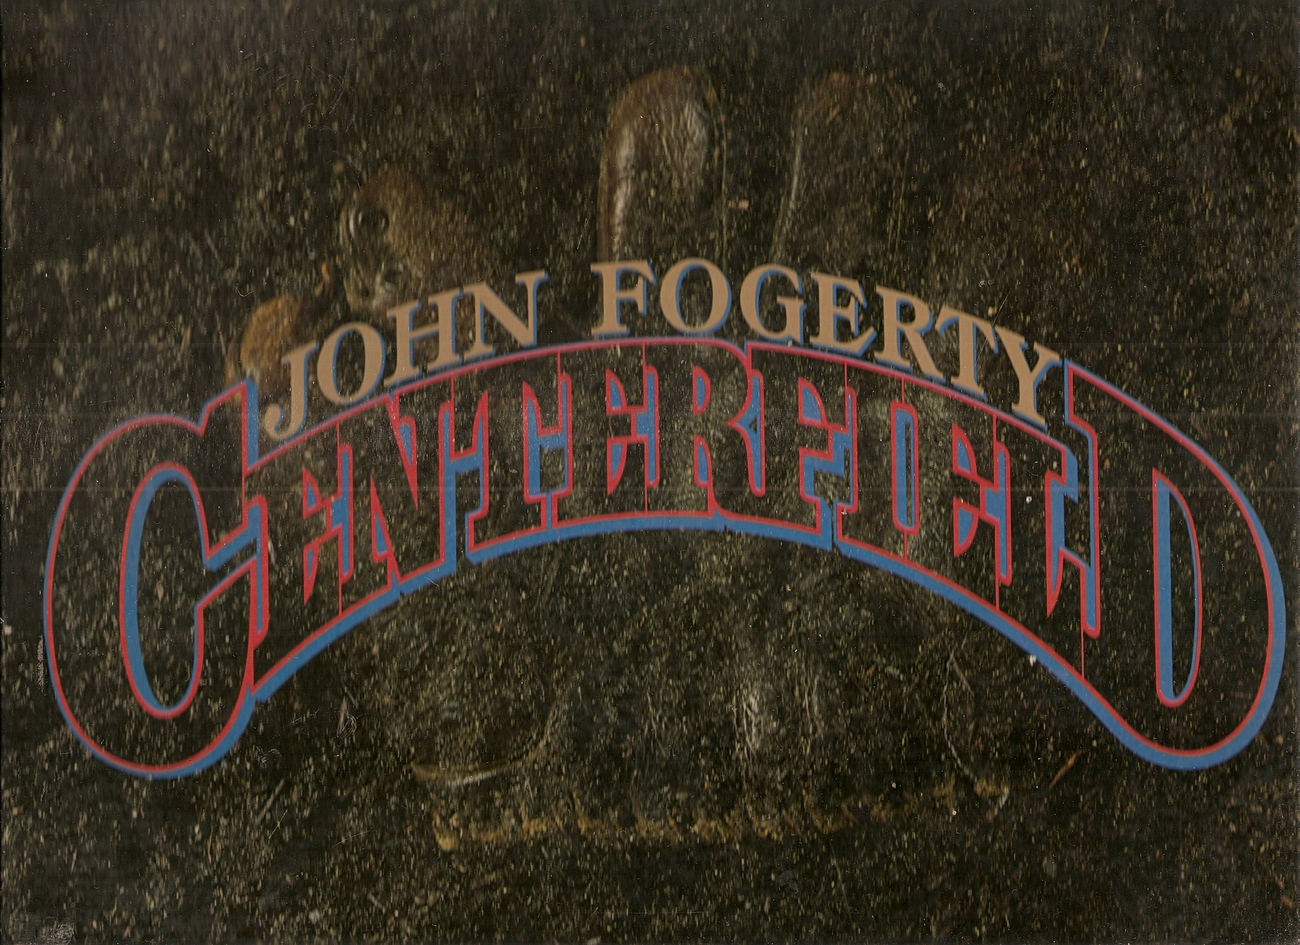 LP--Centerfield by John Fogerty